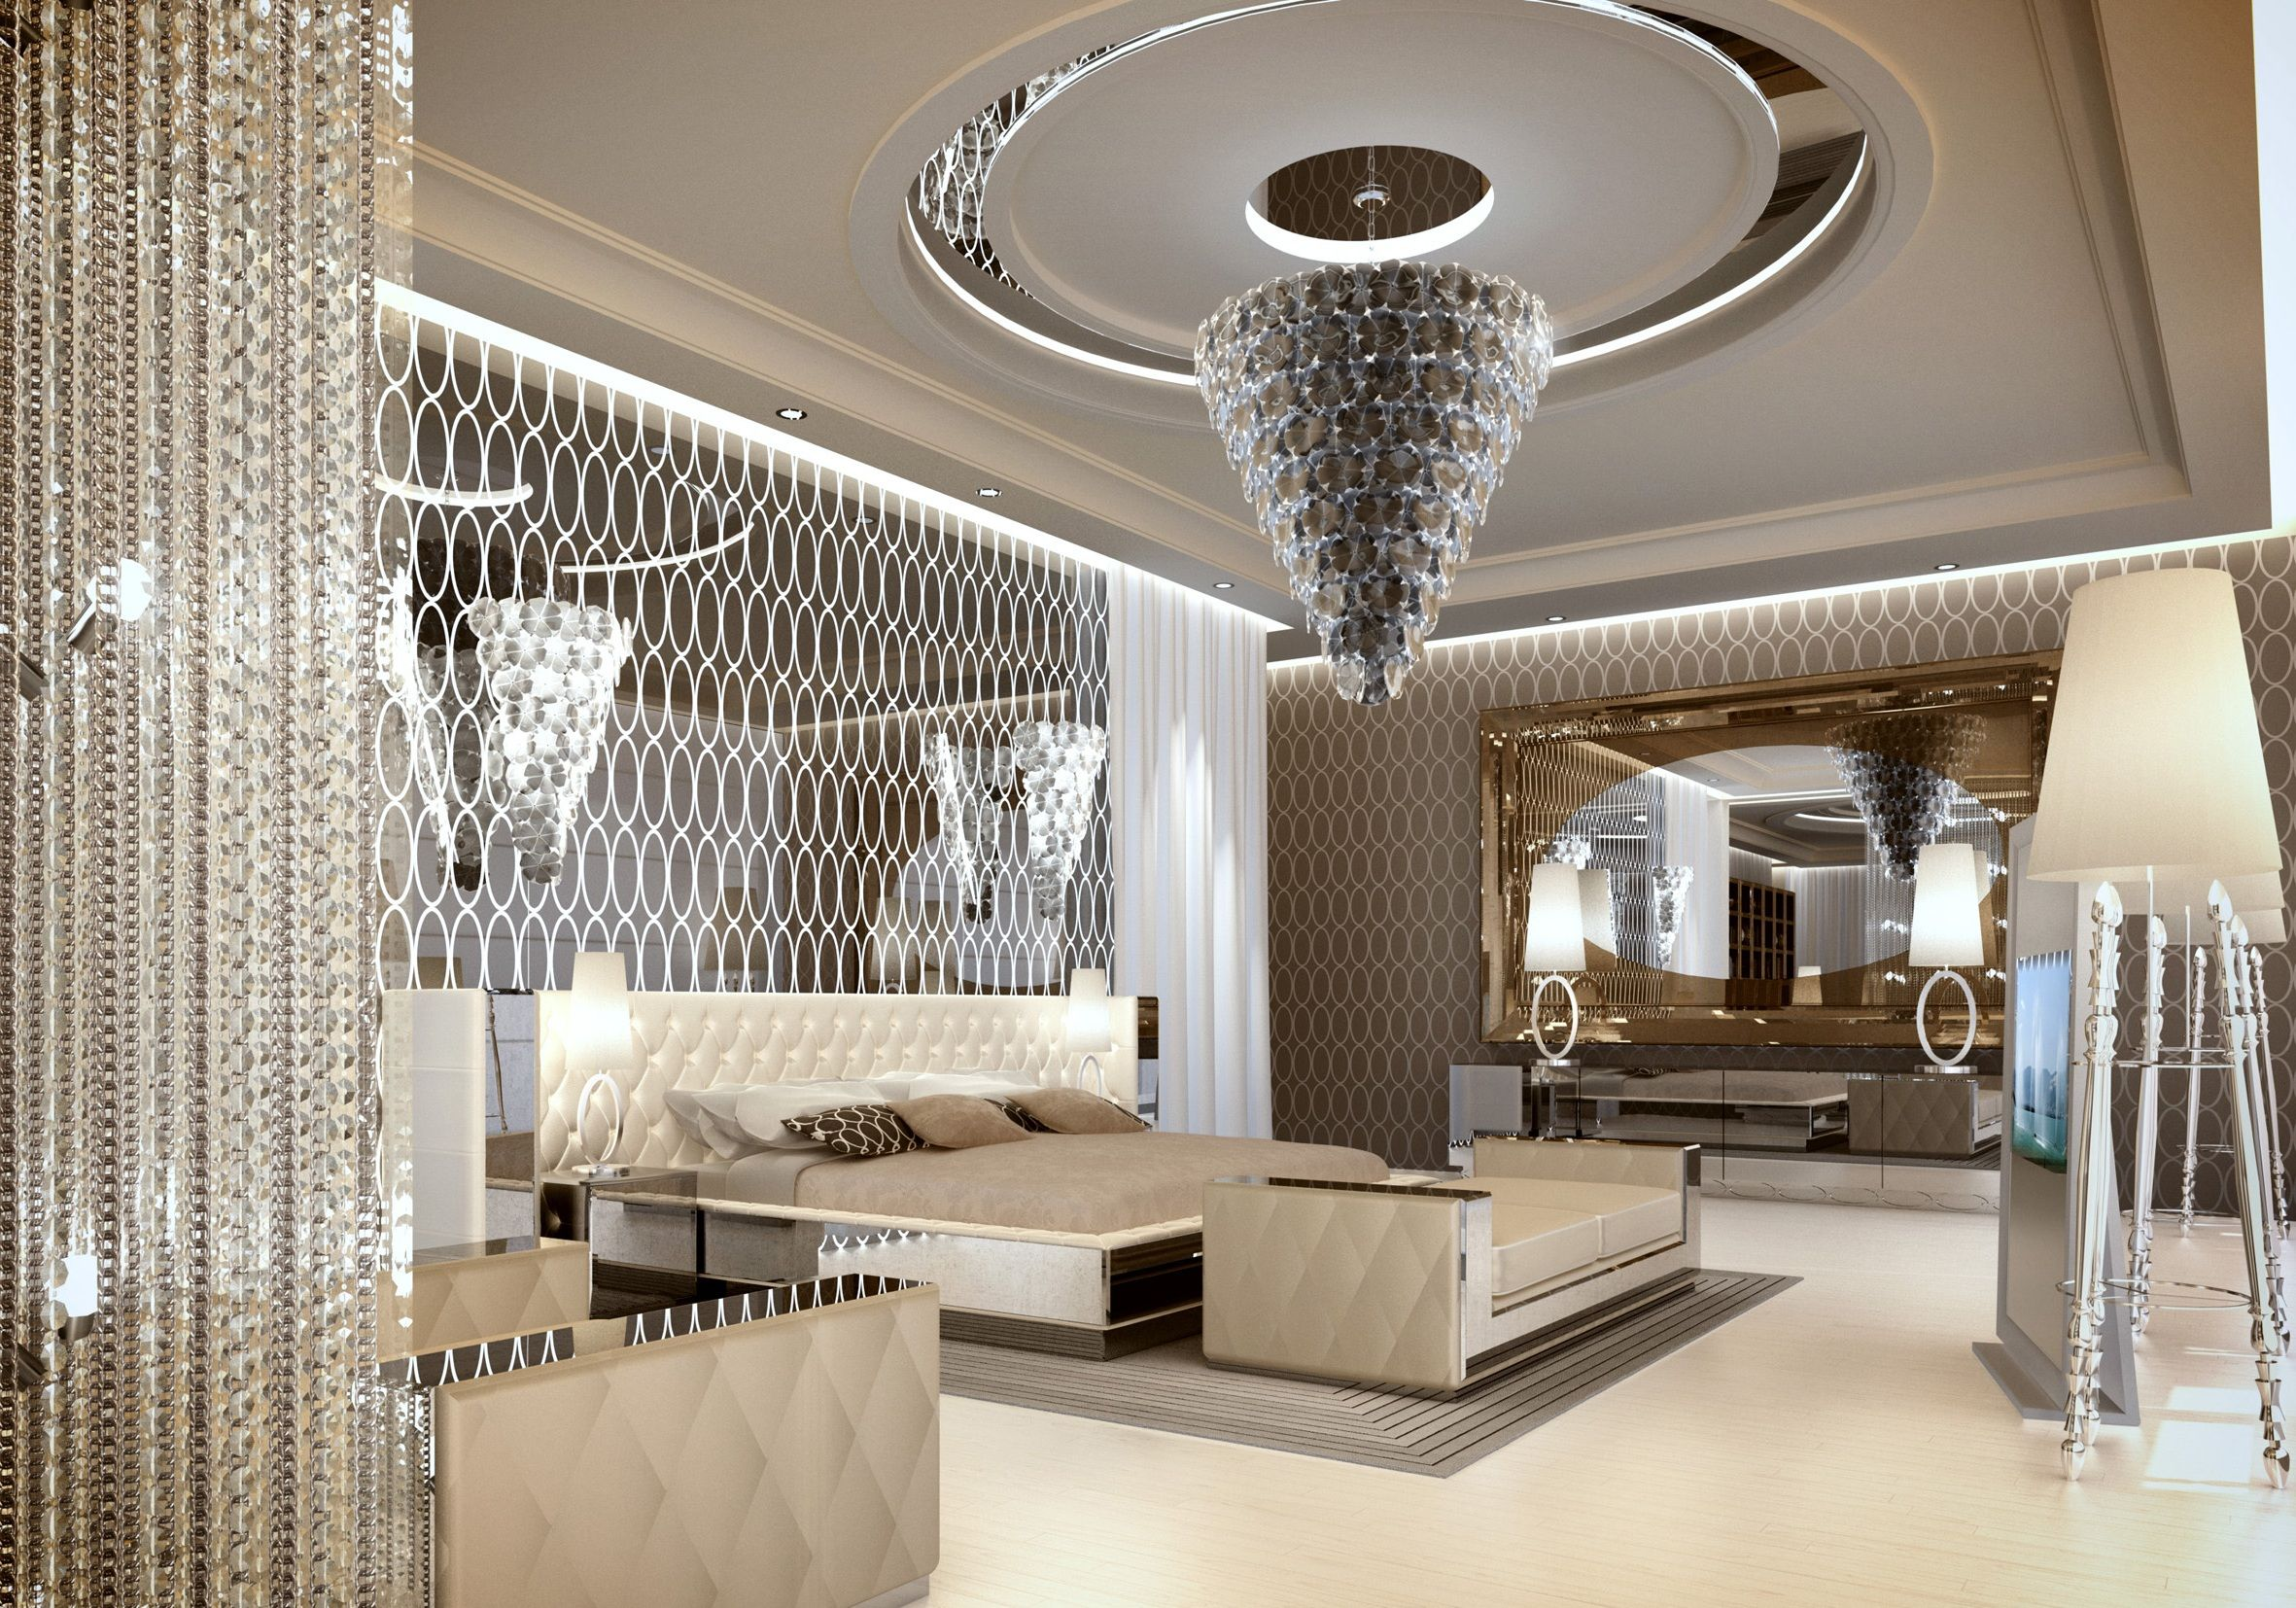 luxury lighting, luxury furniture, luxury home decor